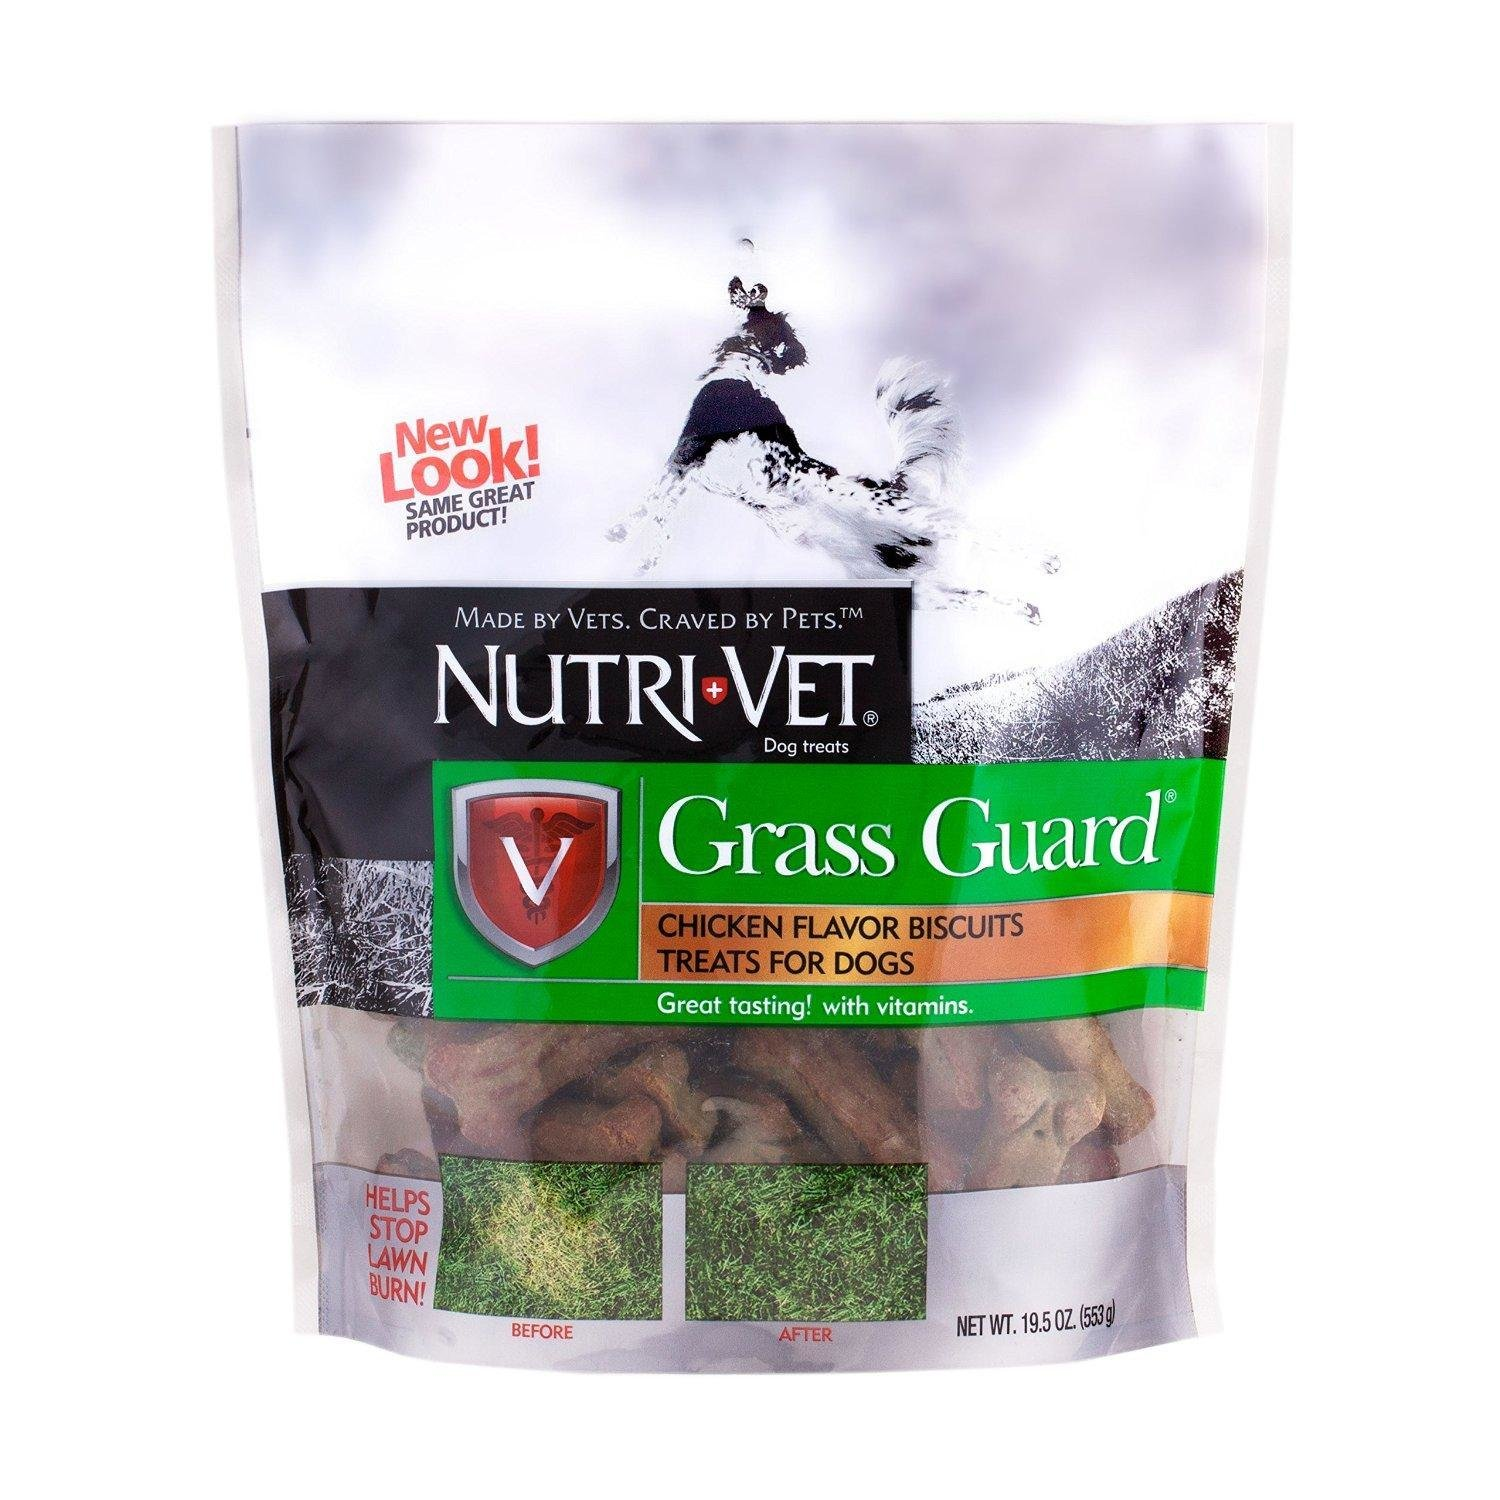 Nutri Vet Grass Guard Biscuits For Dogs WMDGVF6SEQW7A